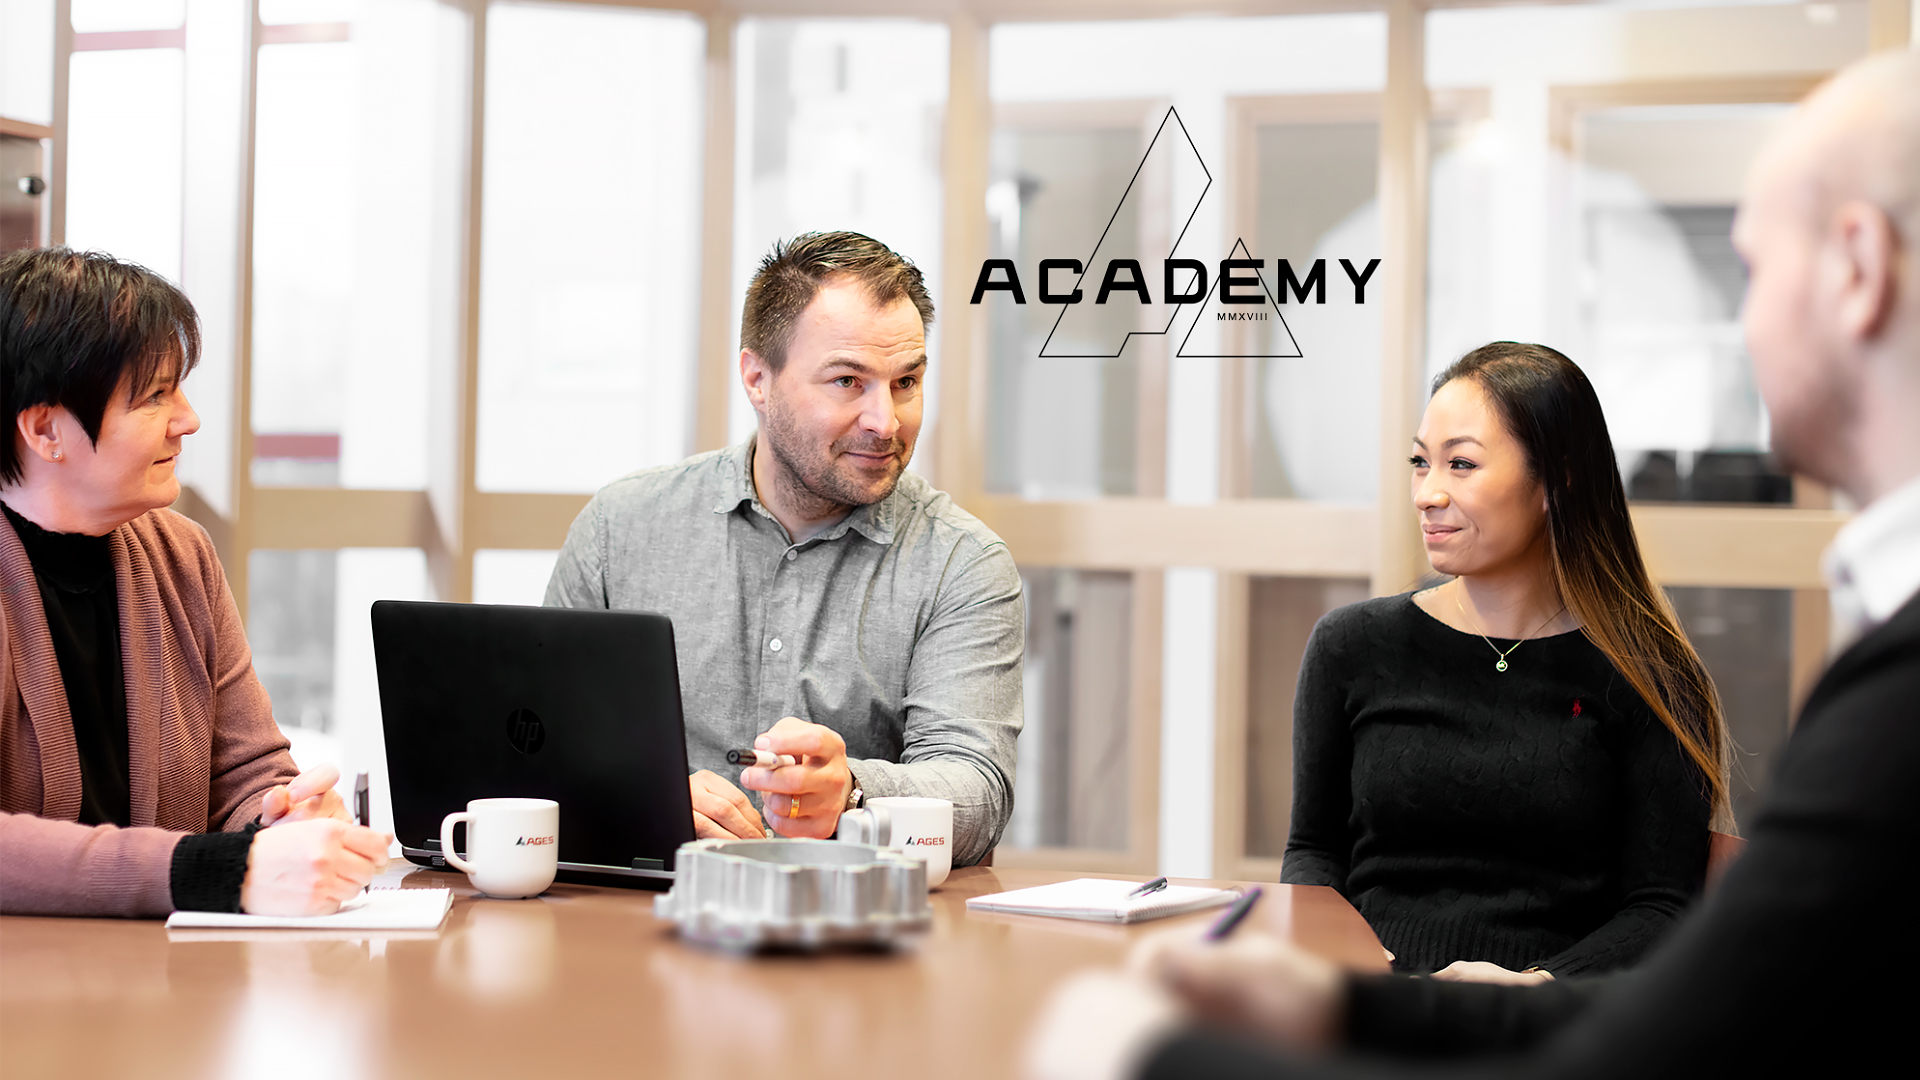 AGES Academy